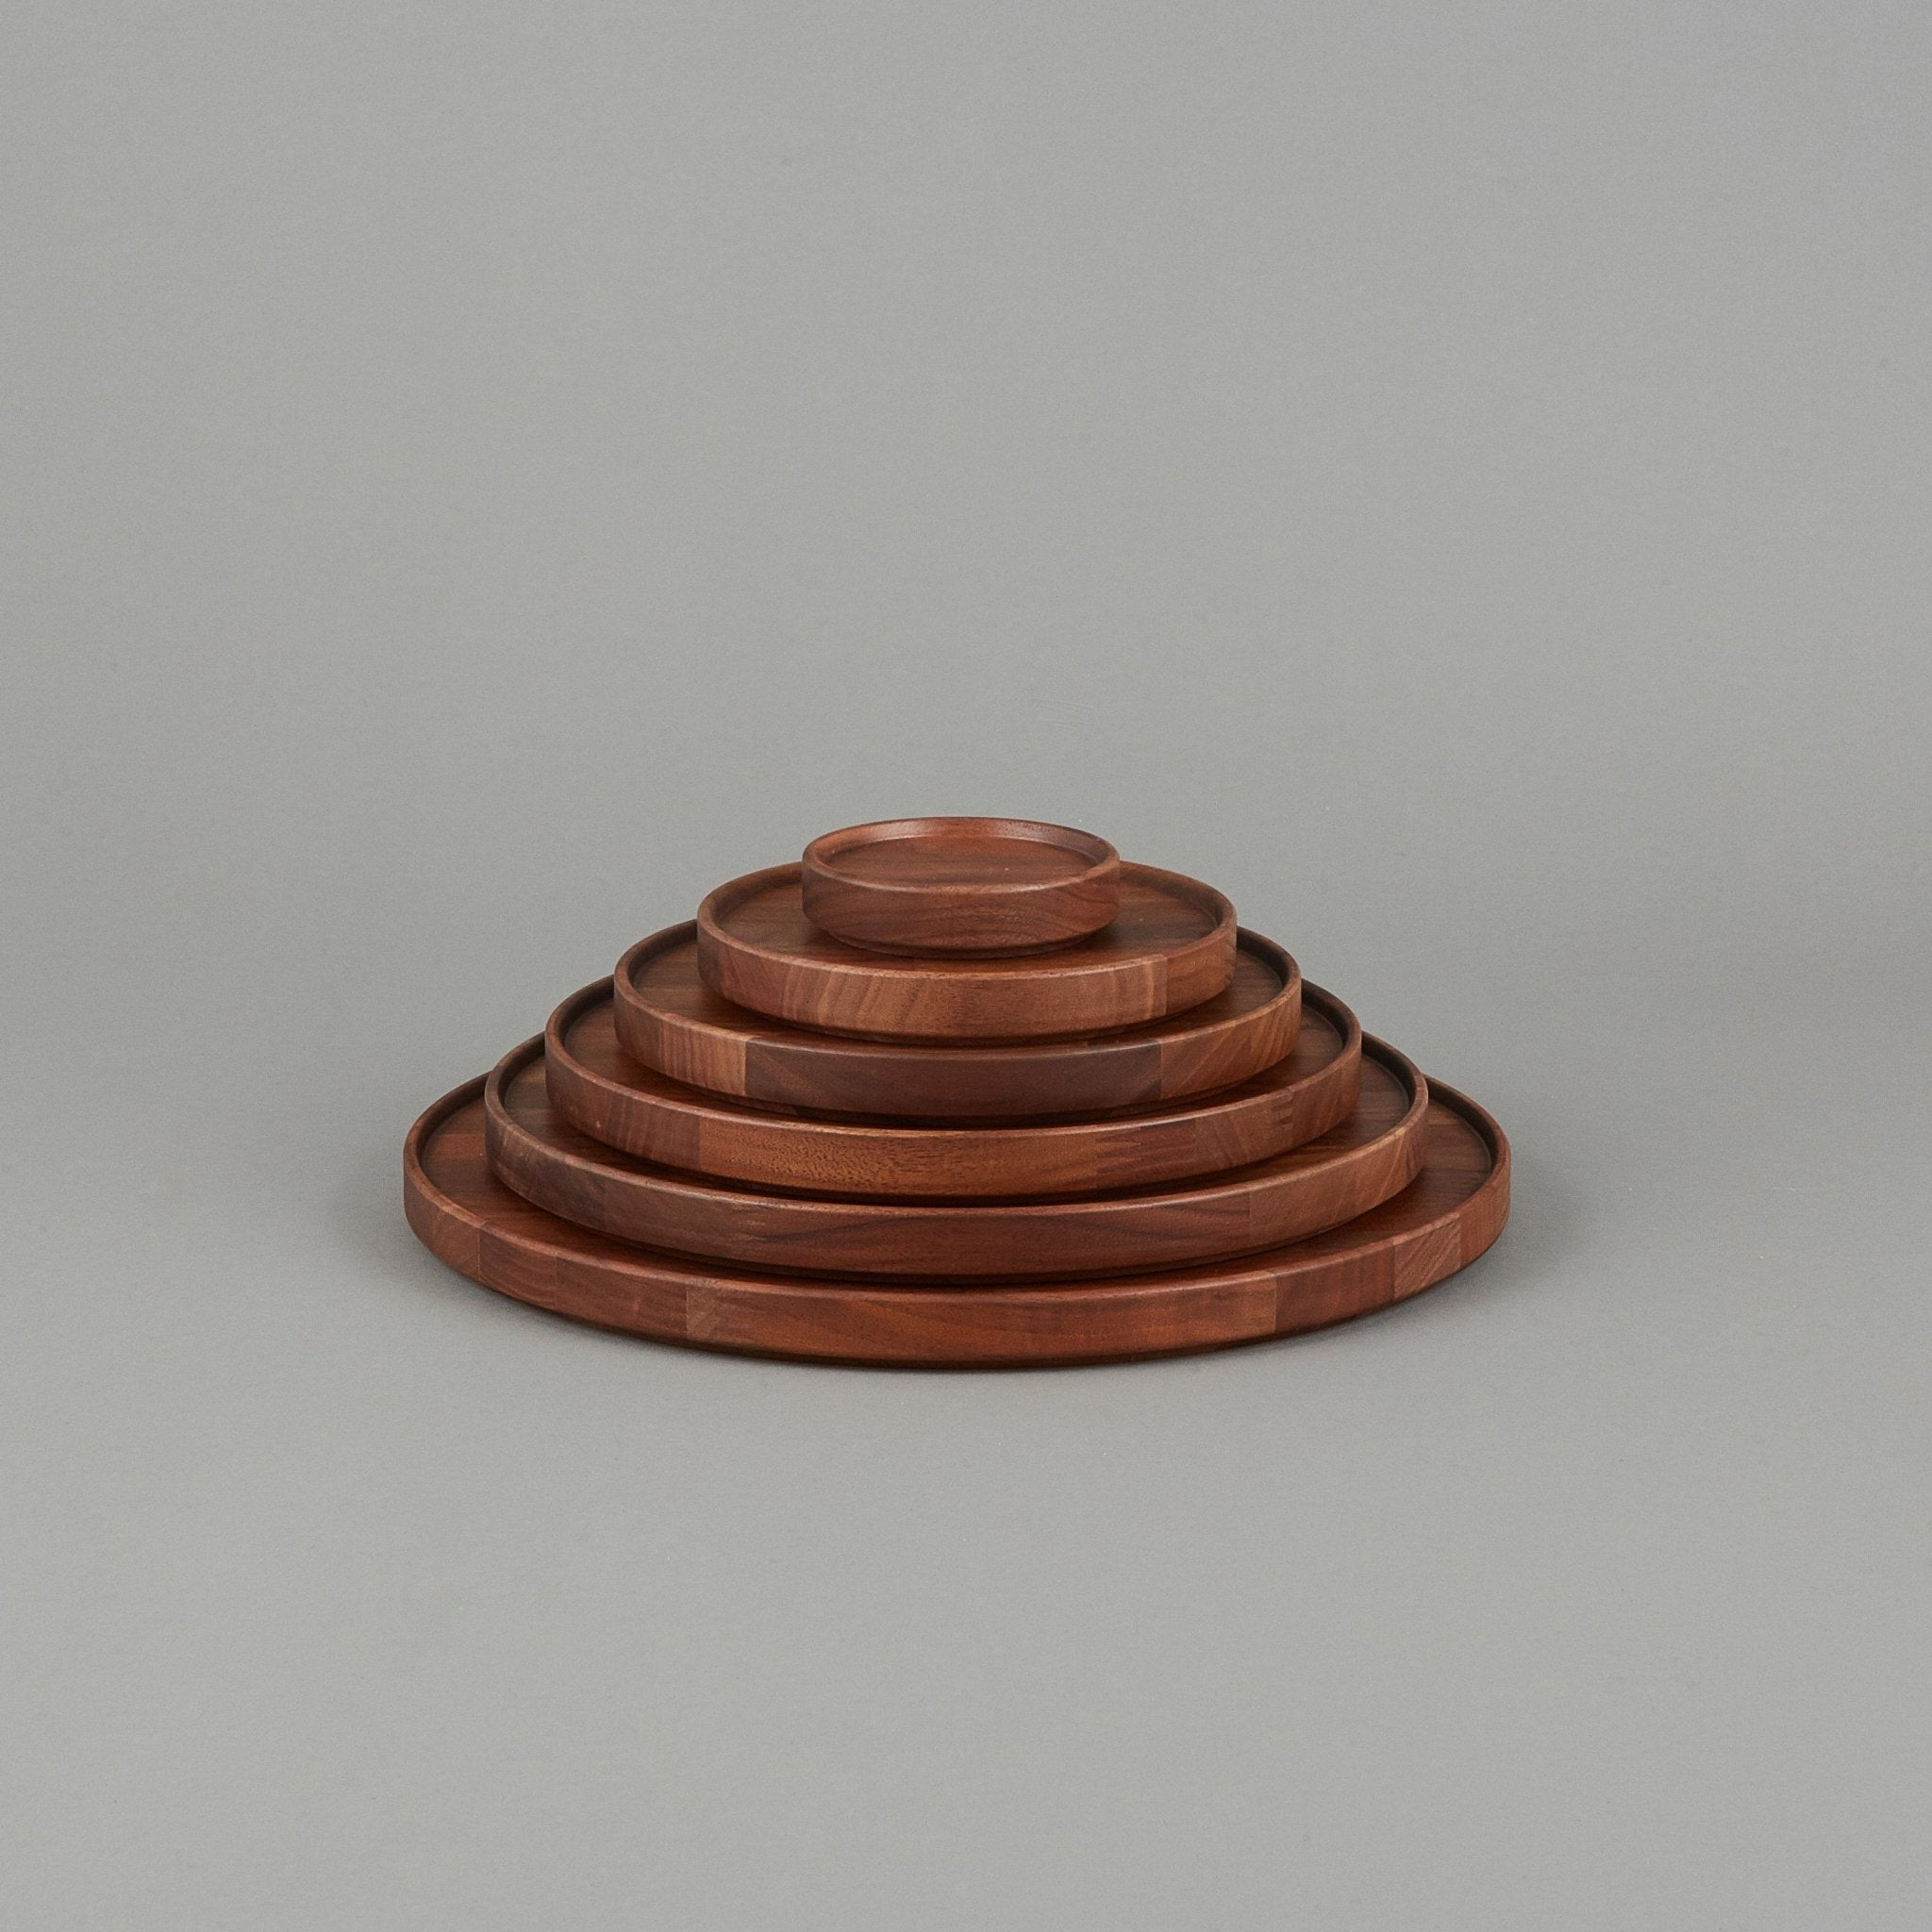 "HPWN025 - Tray / Lid Walnut ø 8.5/8"" - tortoise general store"